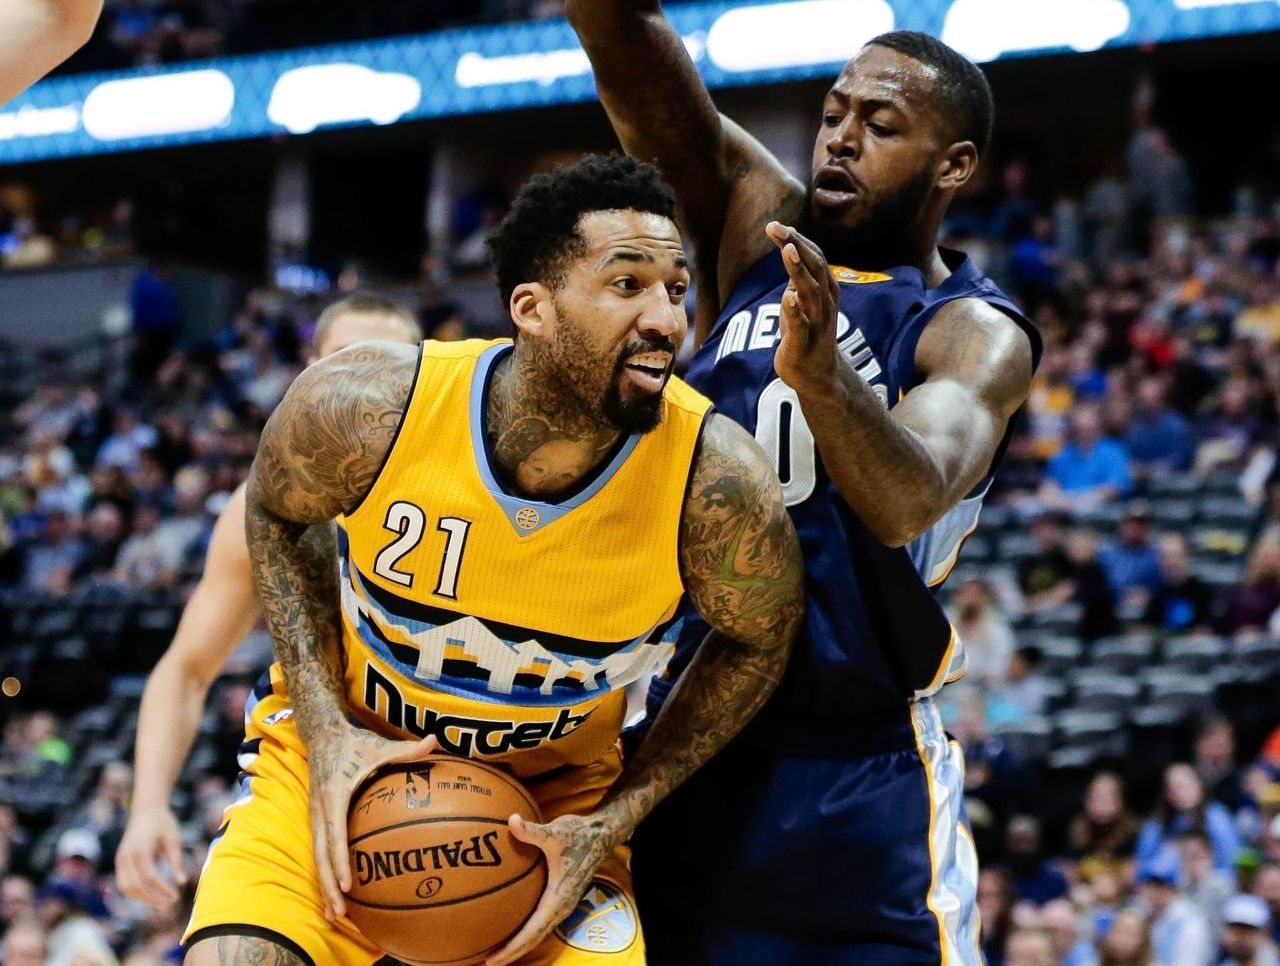 Cropped 2017 02 26t224105z 1268110091 nocid rtrmadp 3 nba memphis grizzlies at denver nuggets